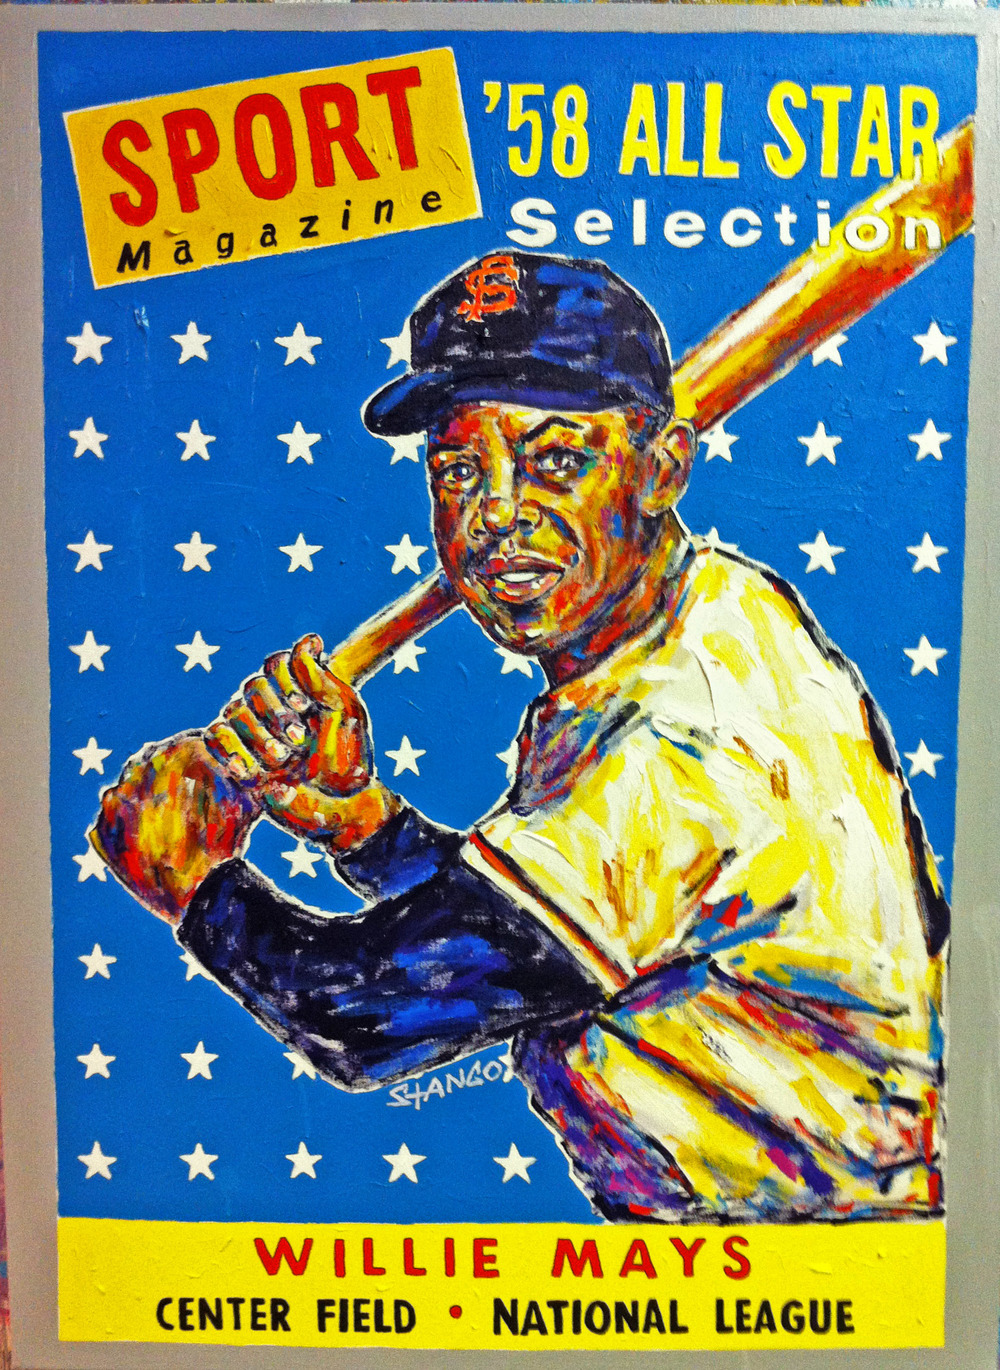 Willie Mays - All Star